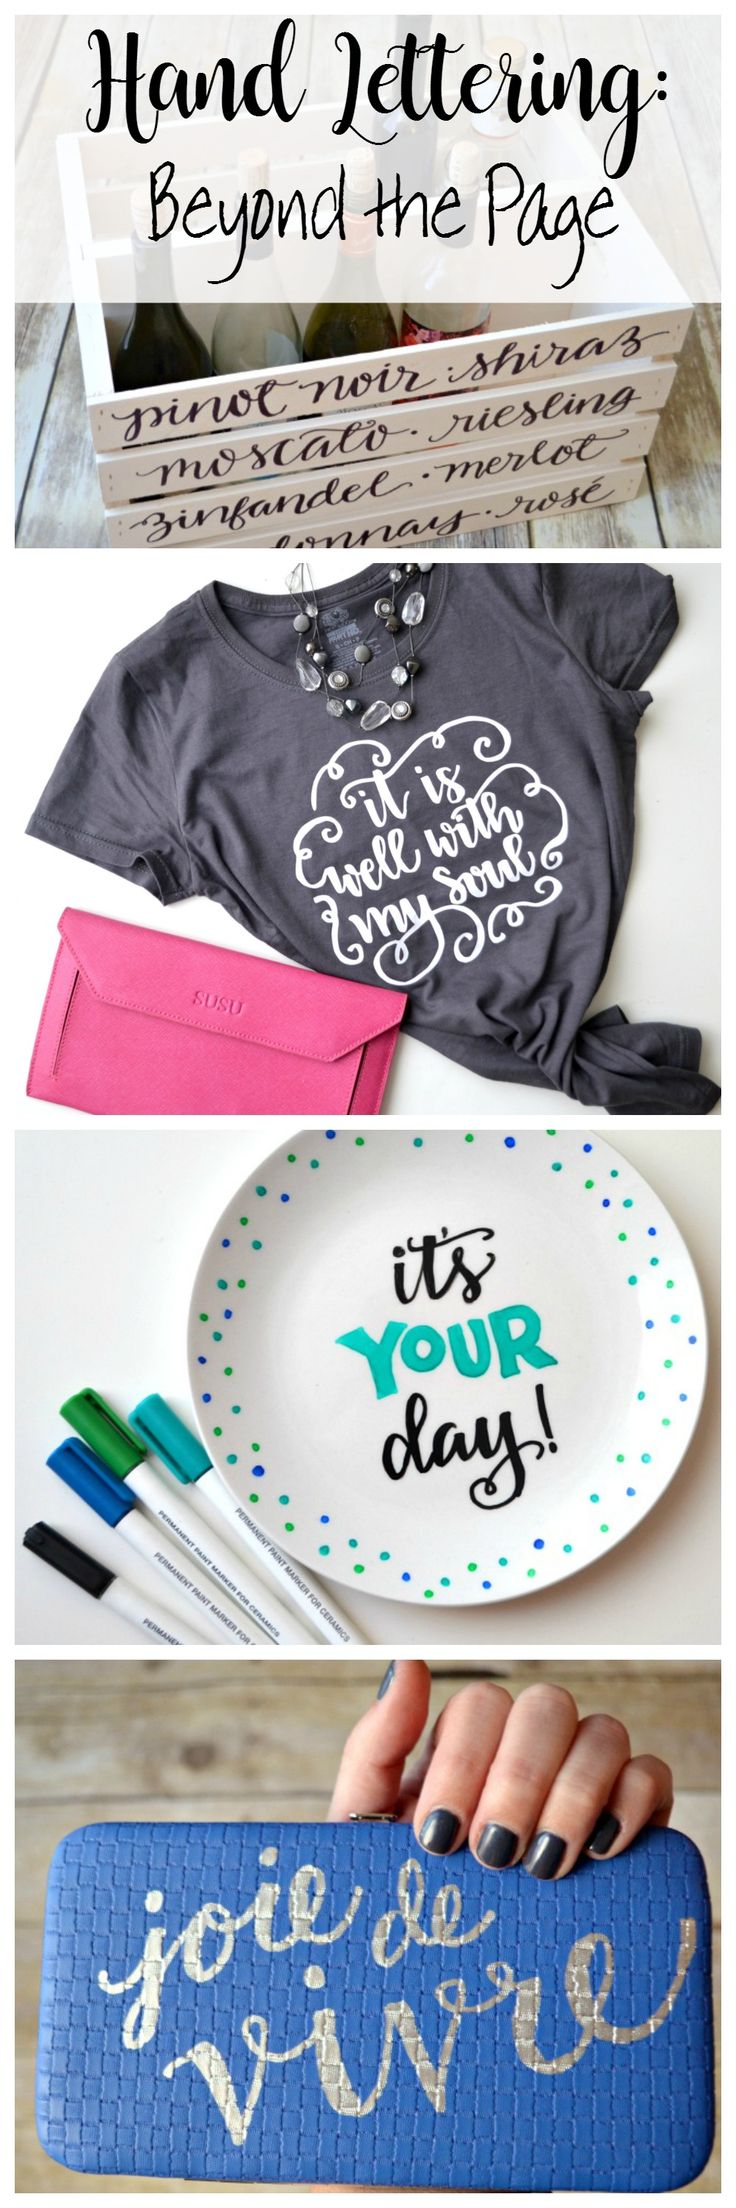 Hand Lettering Beyond the Page. Need ideas for what to do with your hand lettering? This is the post for you! | One Arsty Mama for DawnNicoleDesigns.com